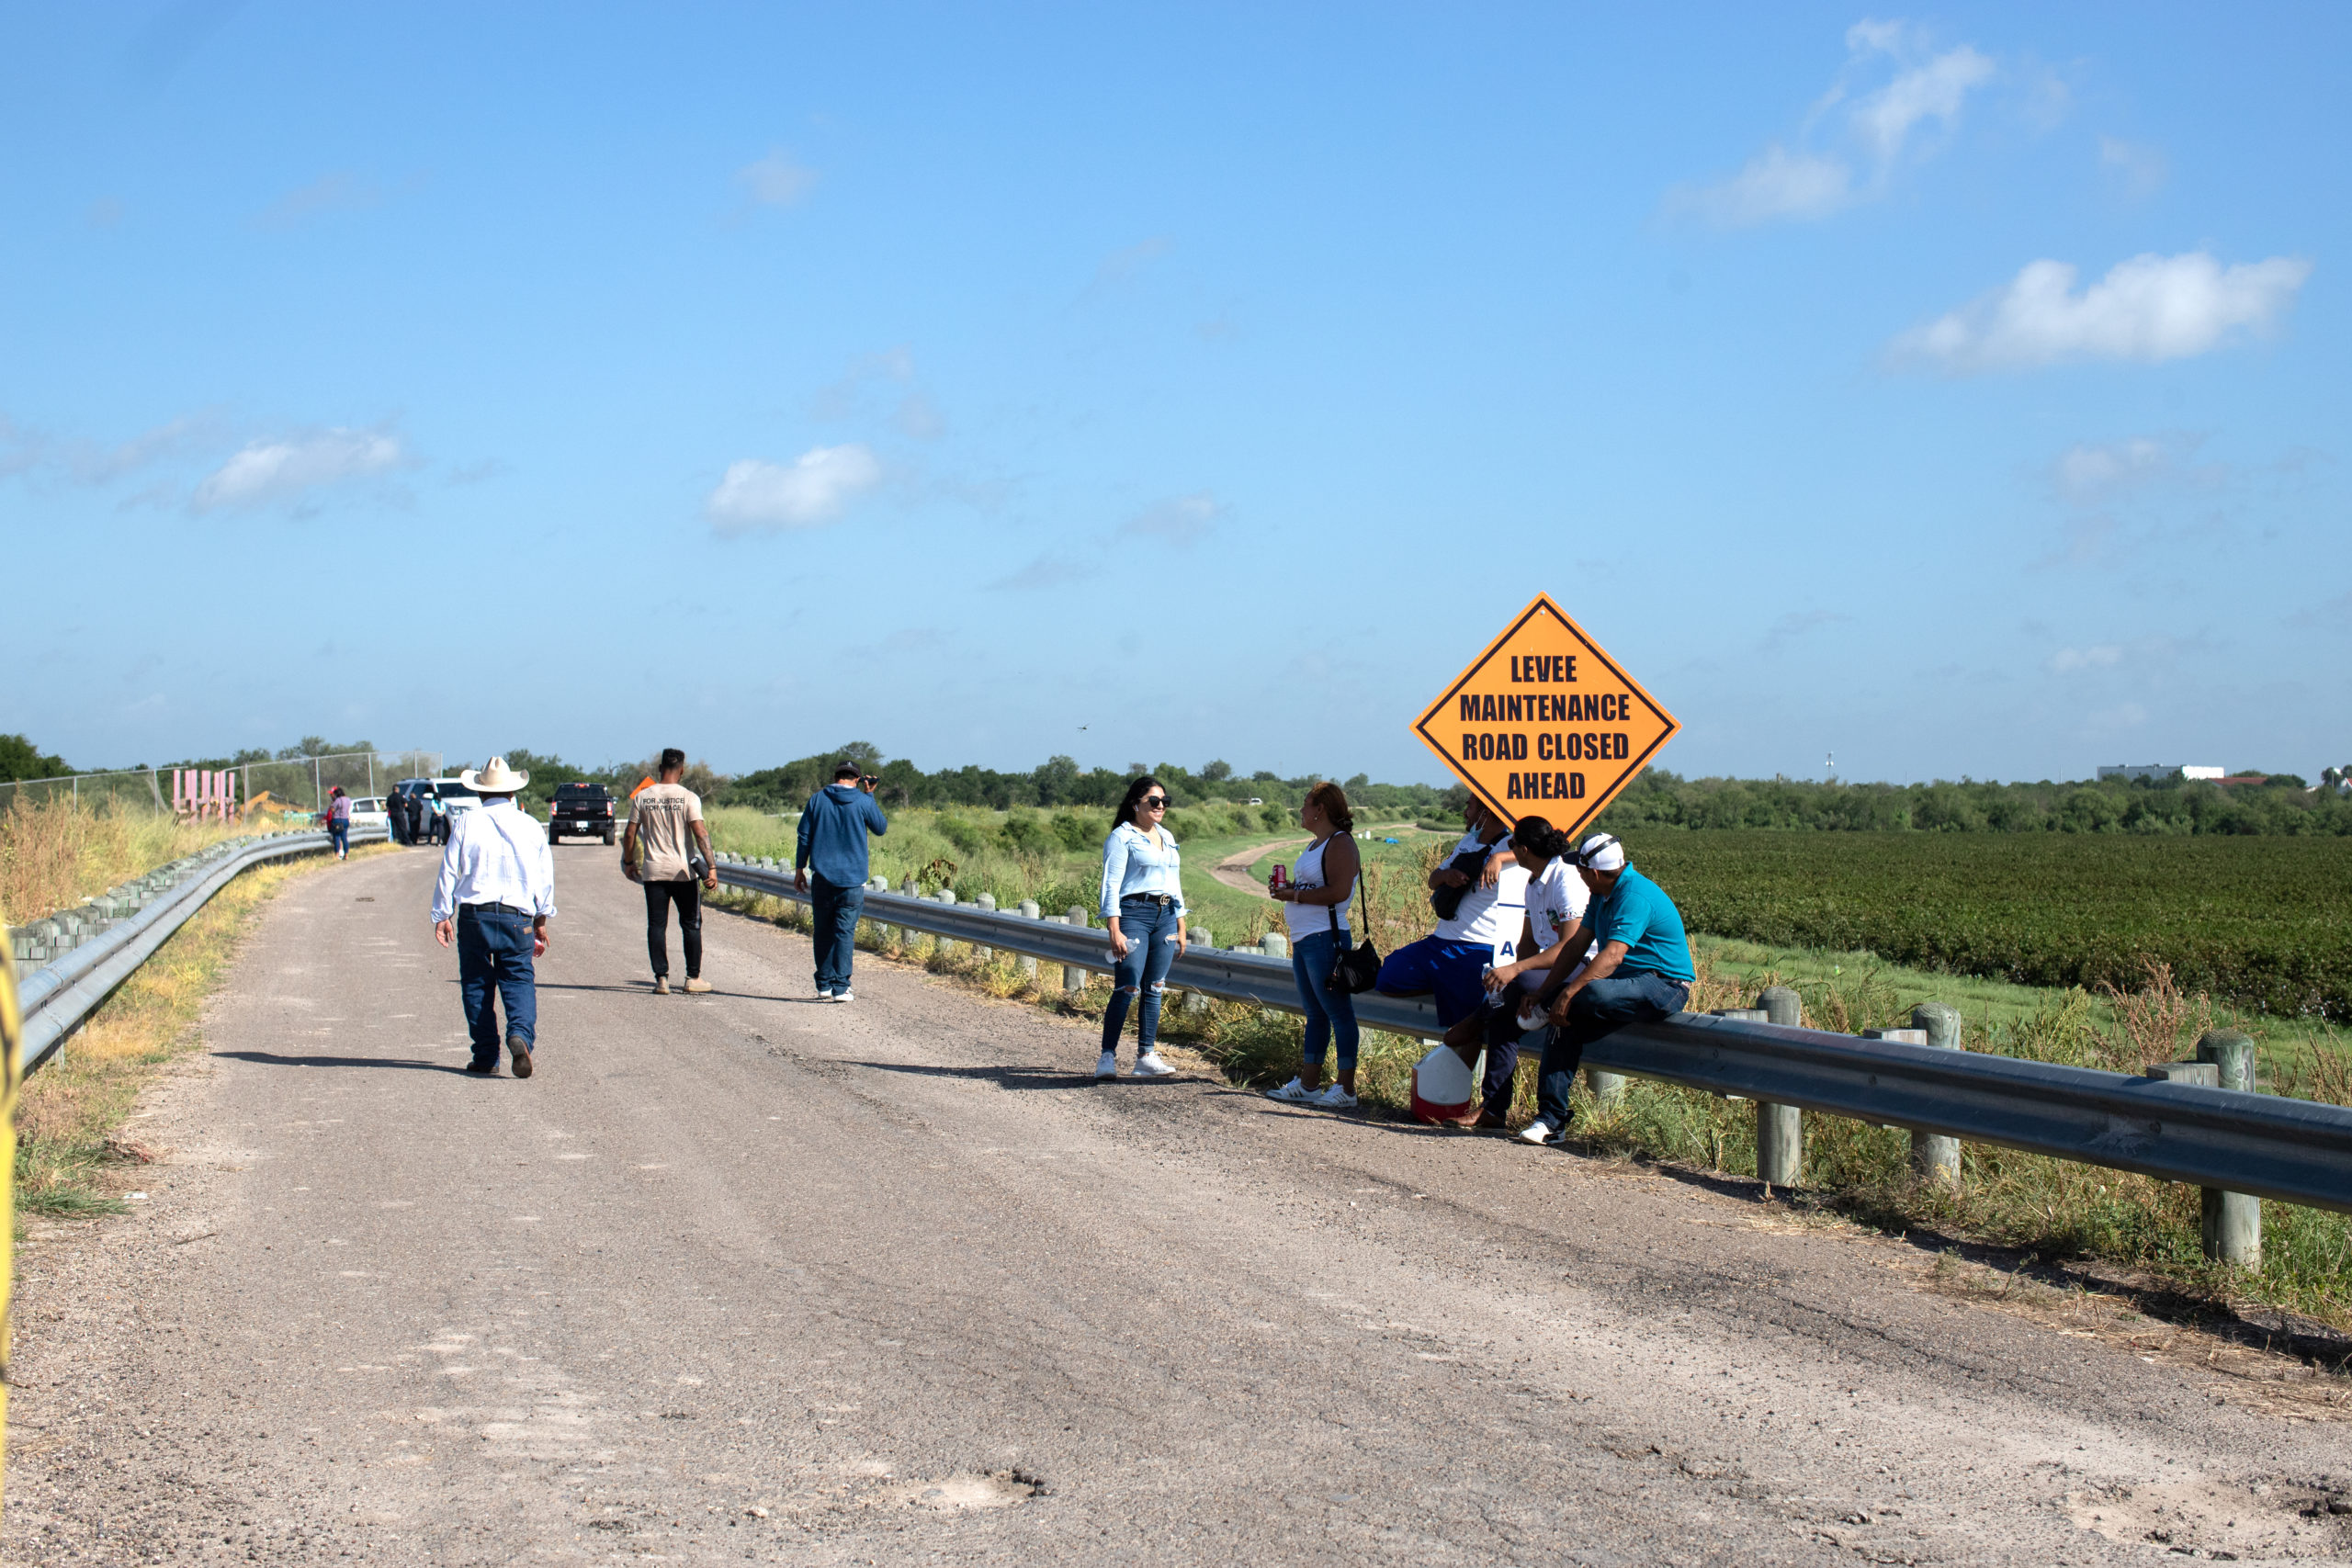 Around two dozen people waited at the endge of Anzalduas Park to pick up friends and family members who tested positive for COVID-19 after entering the U.S. illegally in Mission, Texas, on August 8, 2021. (Kaylee Greenlee - Daily Caller News Foundation)